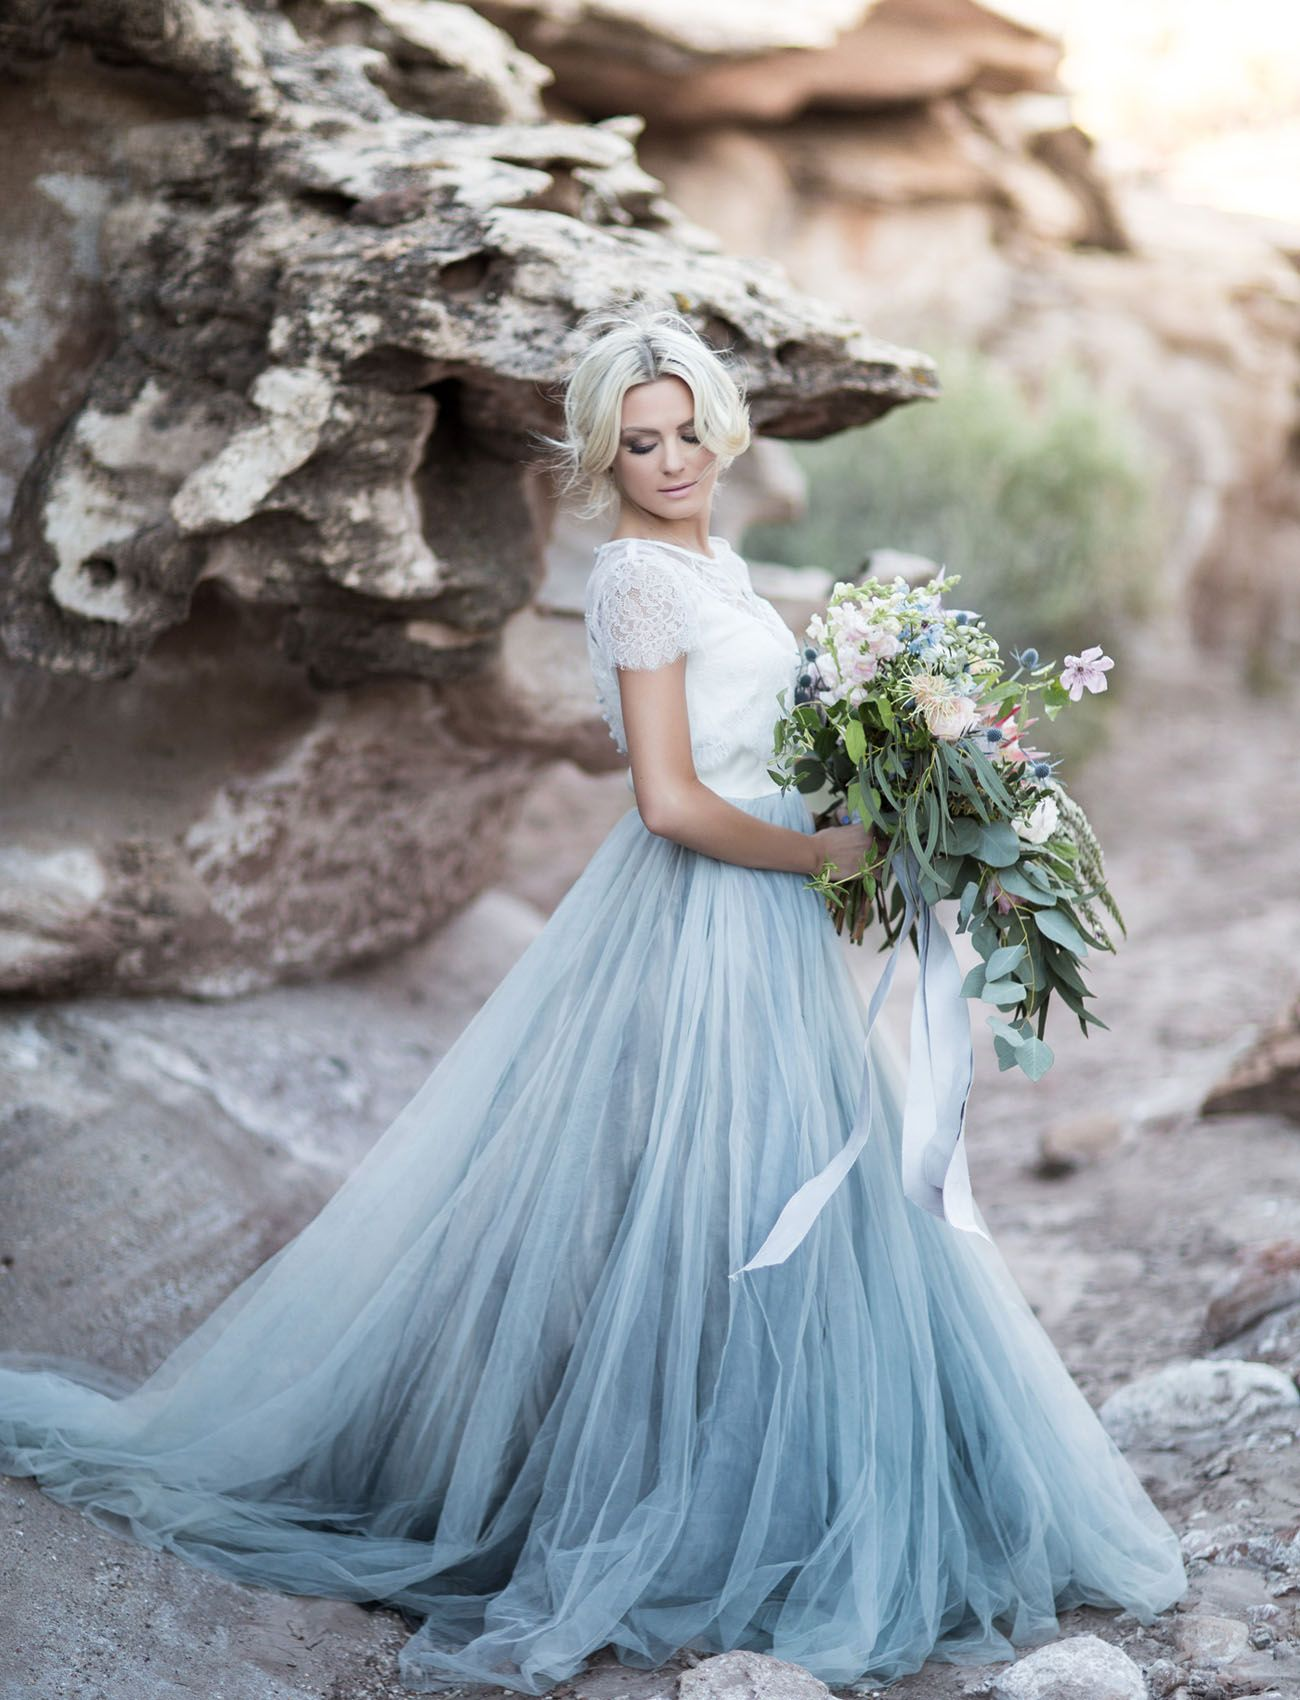 enchanted forest dress | Quince ideas | Pinterest | Enchanted ...